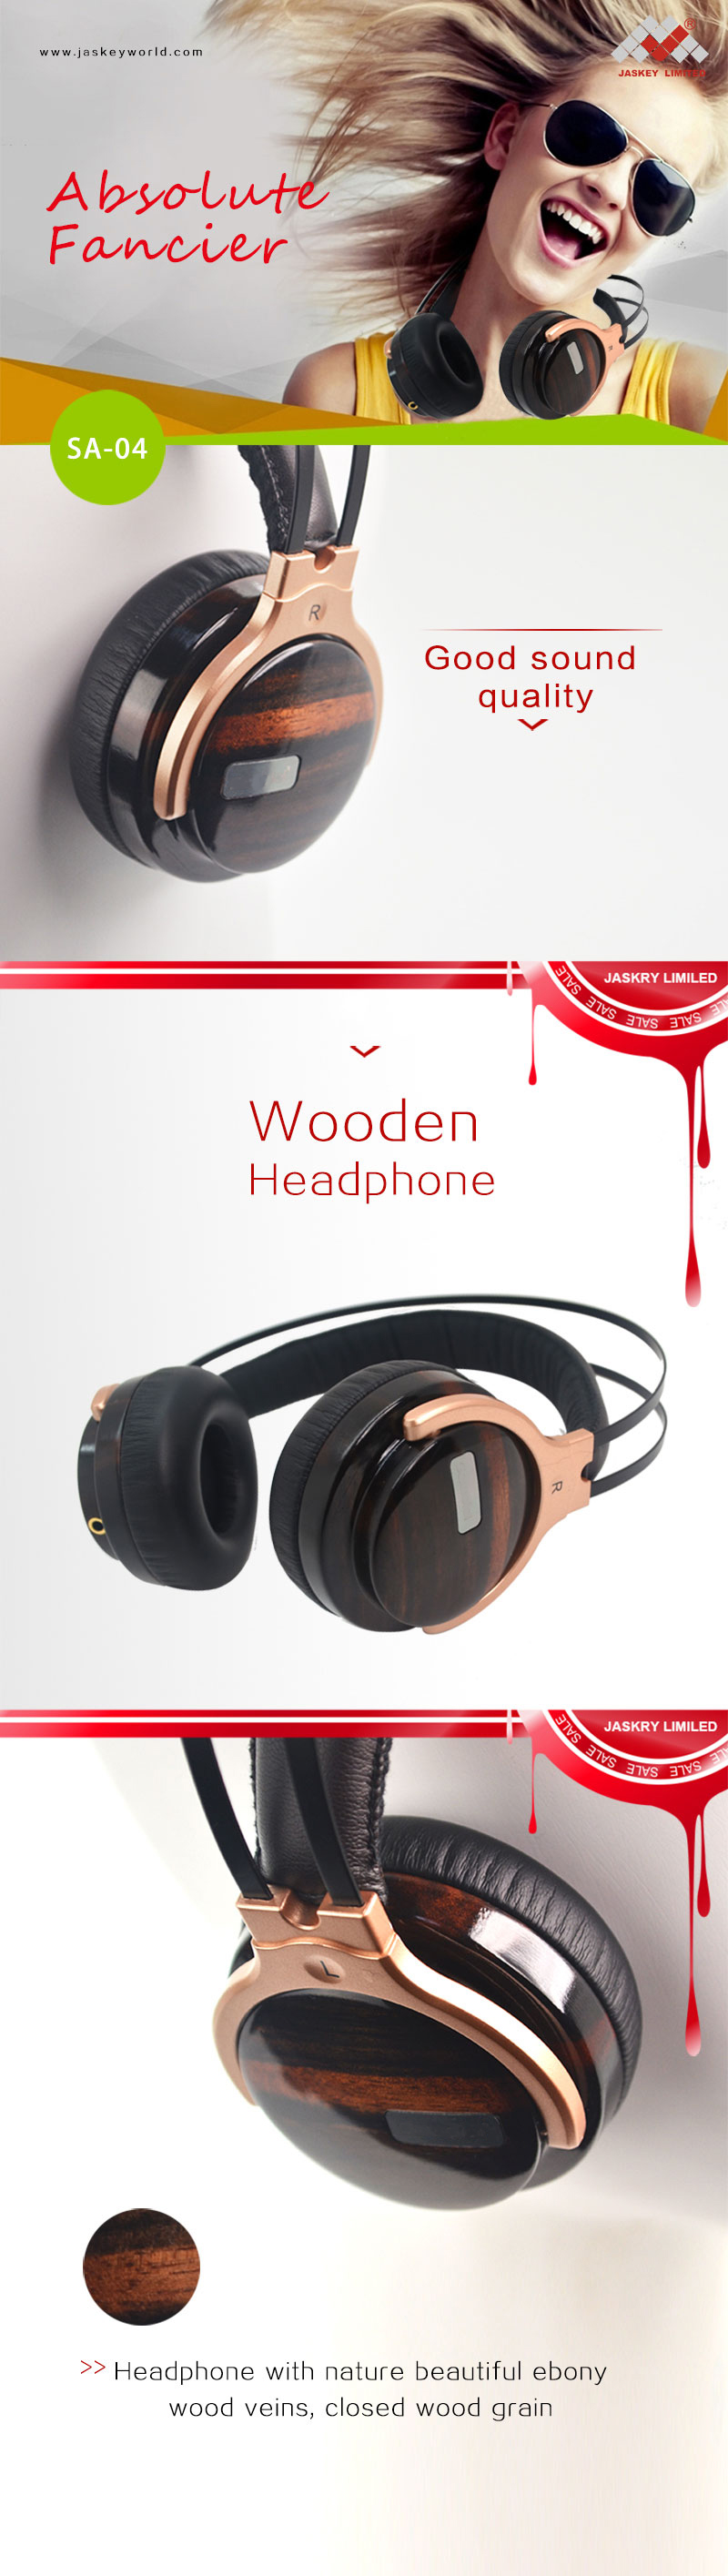 For Woodworking Headphones